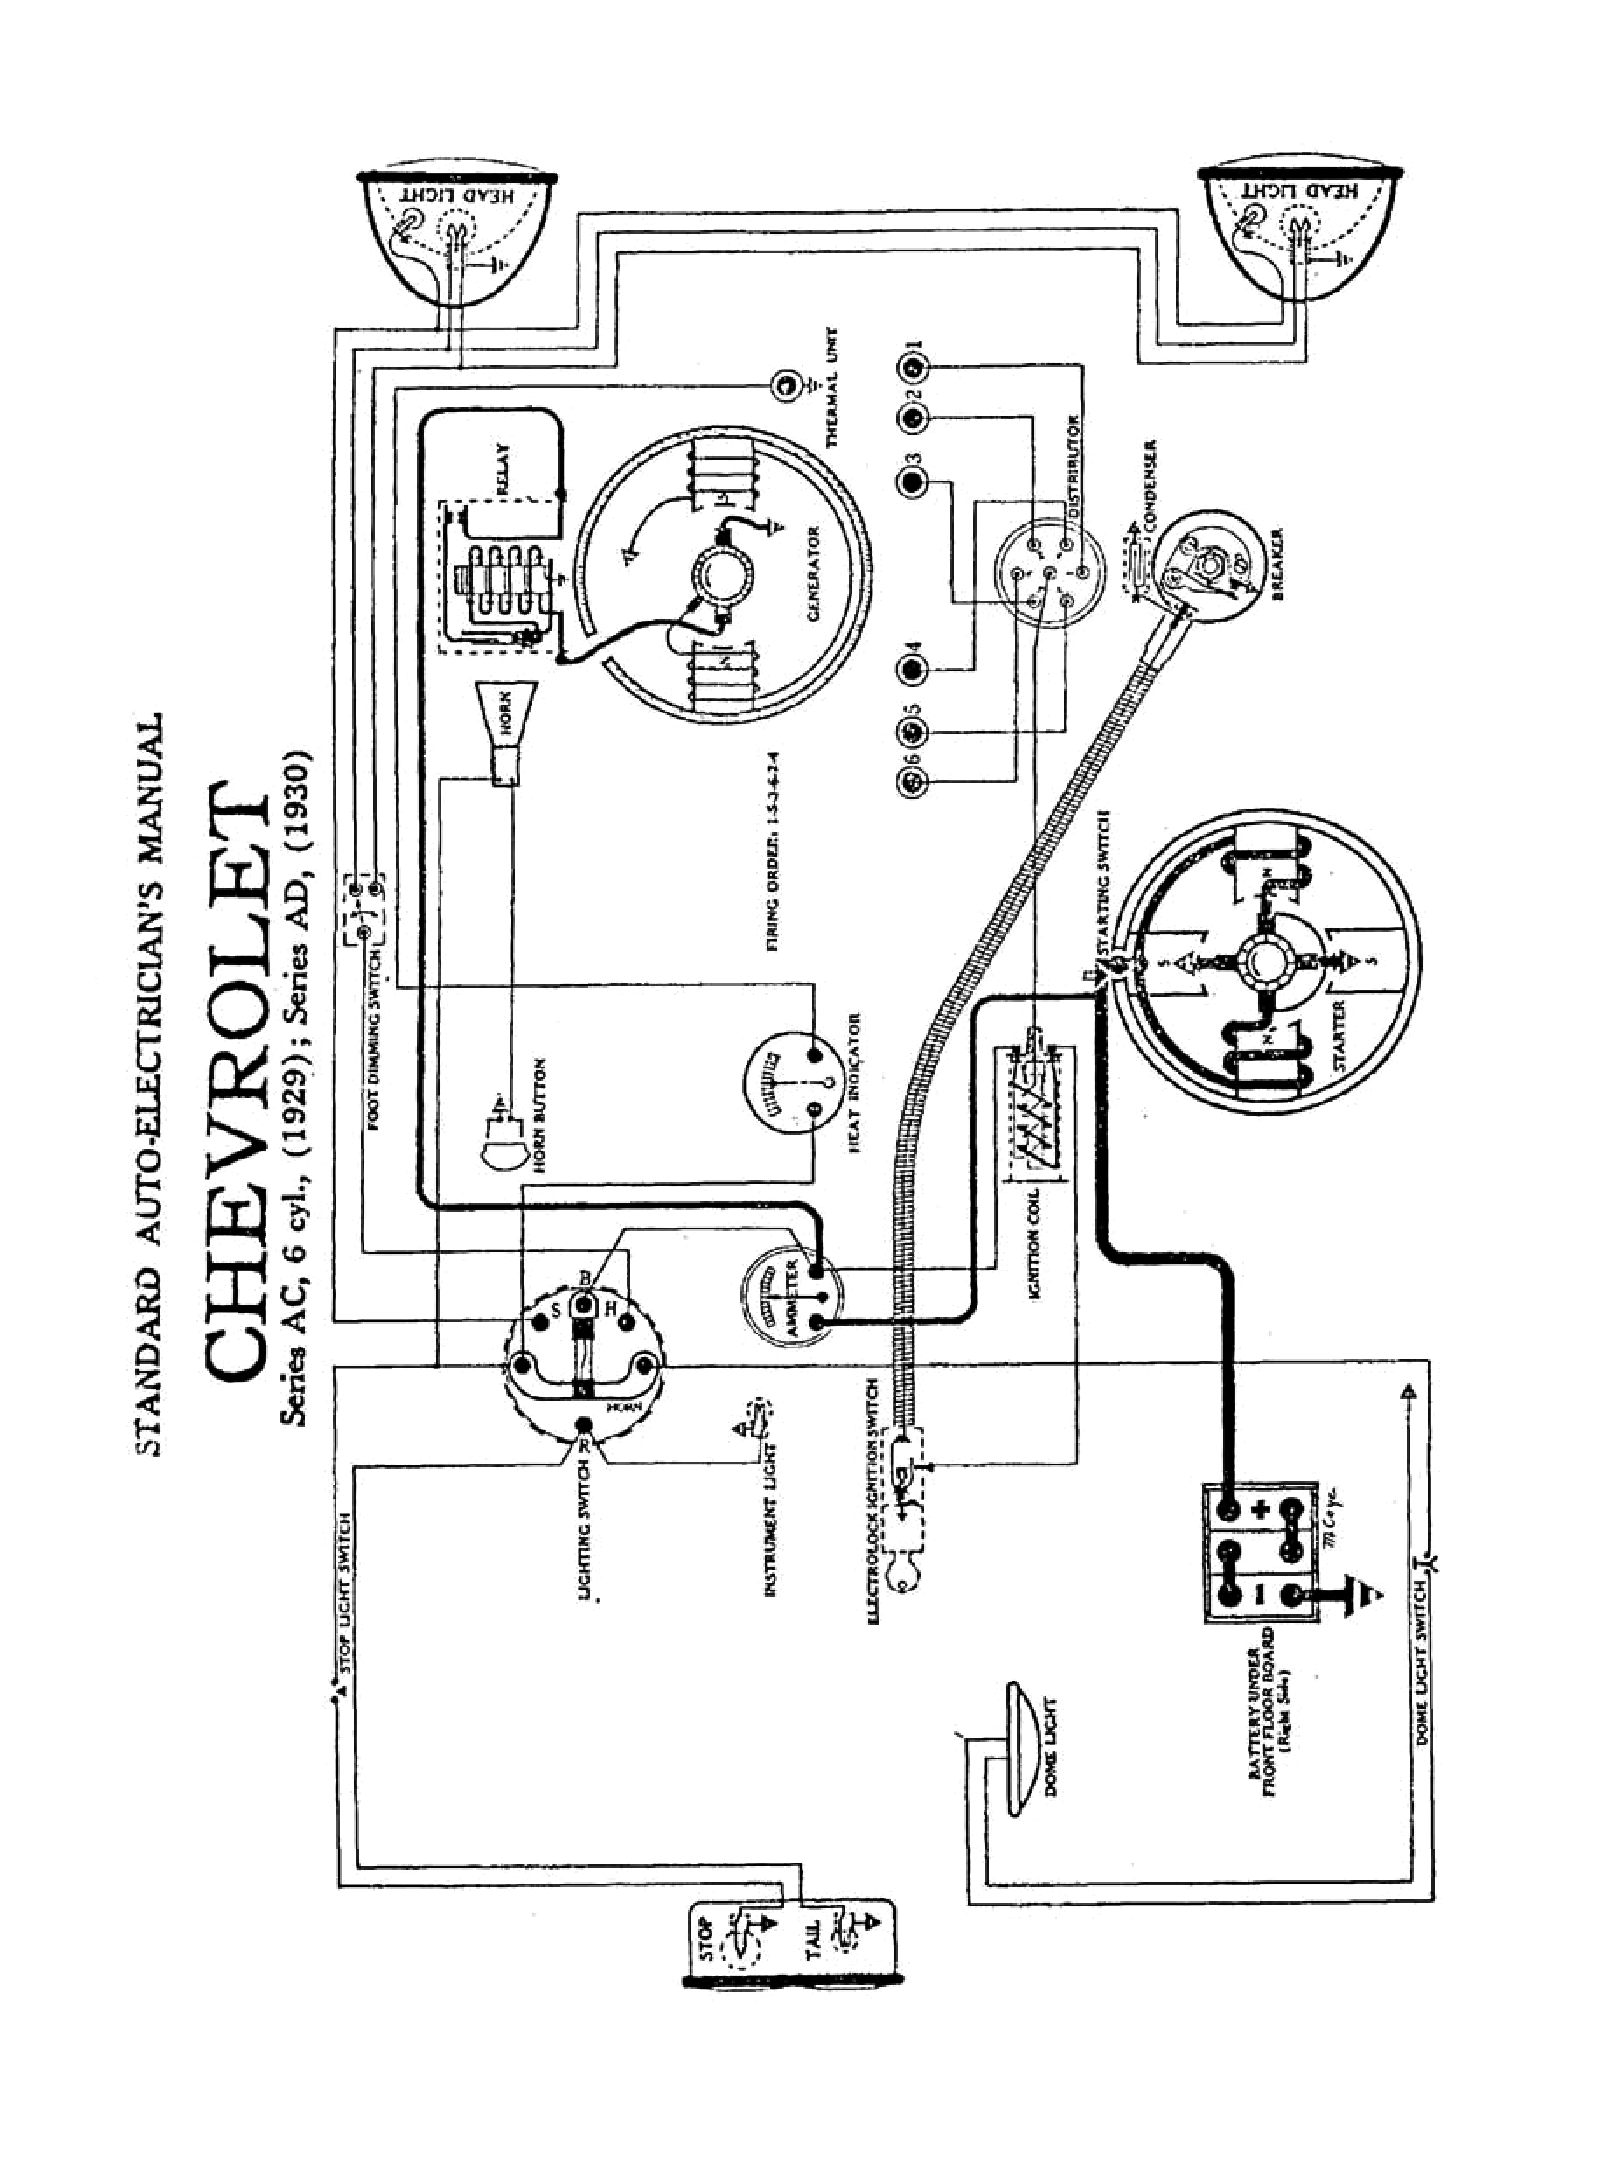 2930wiring chevy wiring diagrams chevrolet wiring diagrams free download at fashall.co